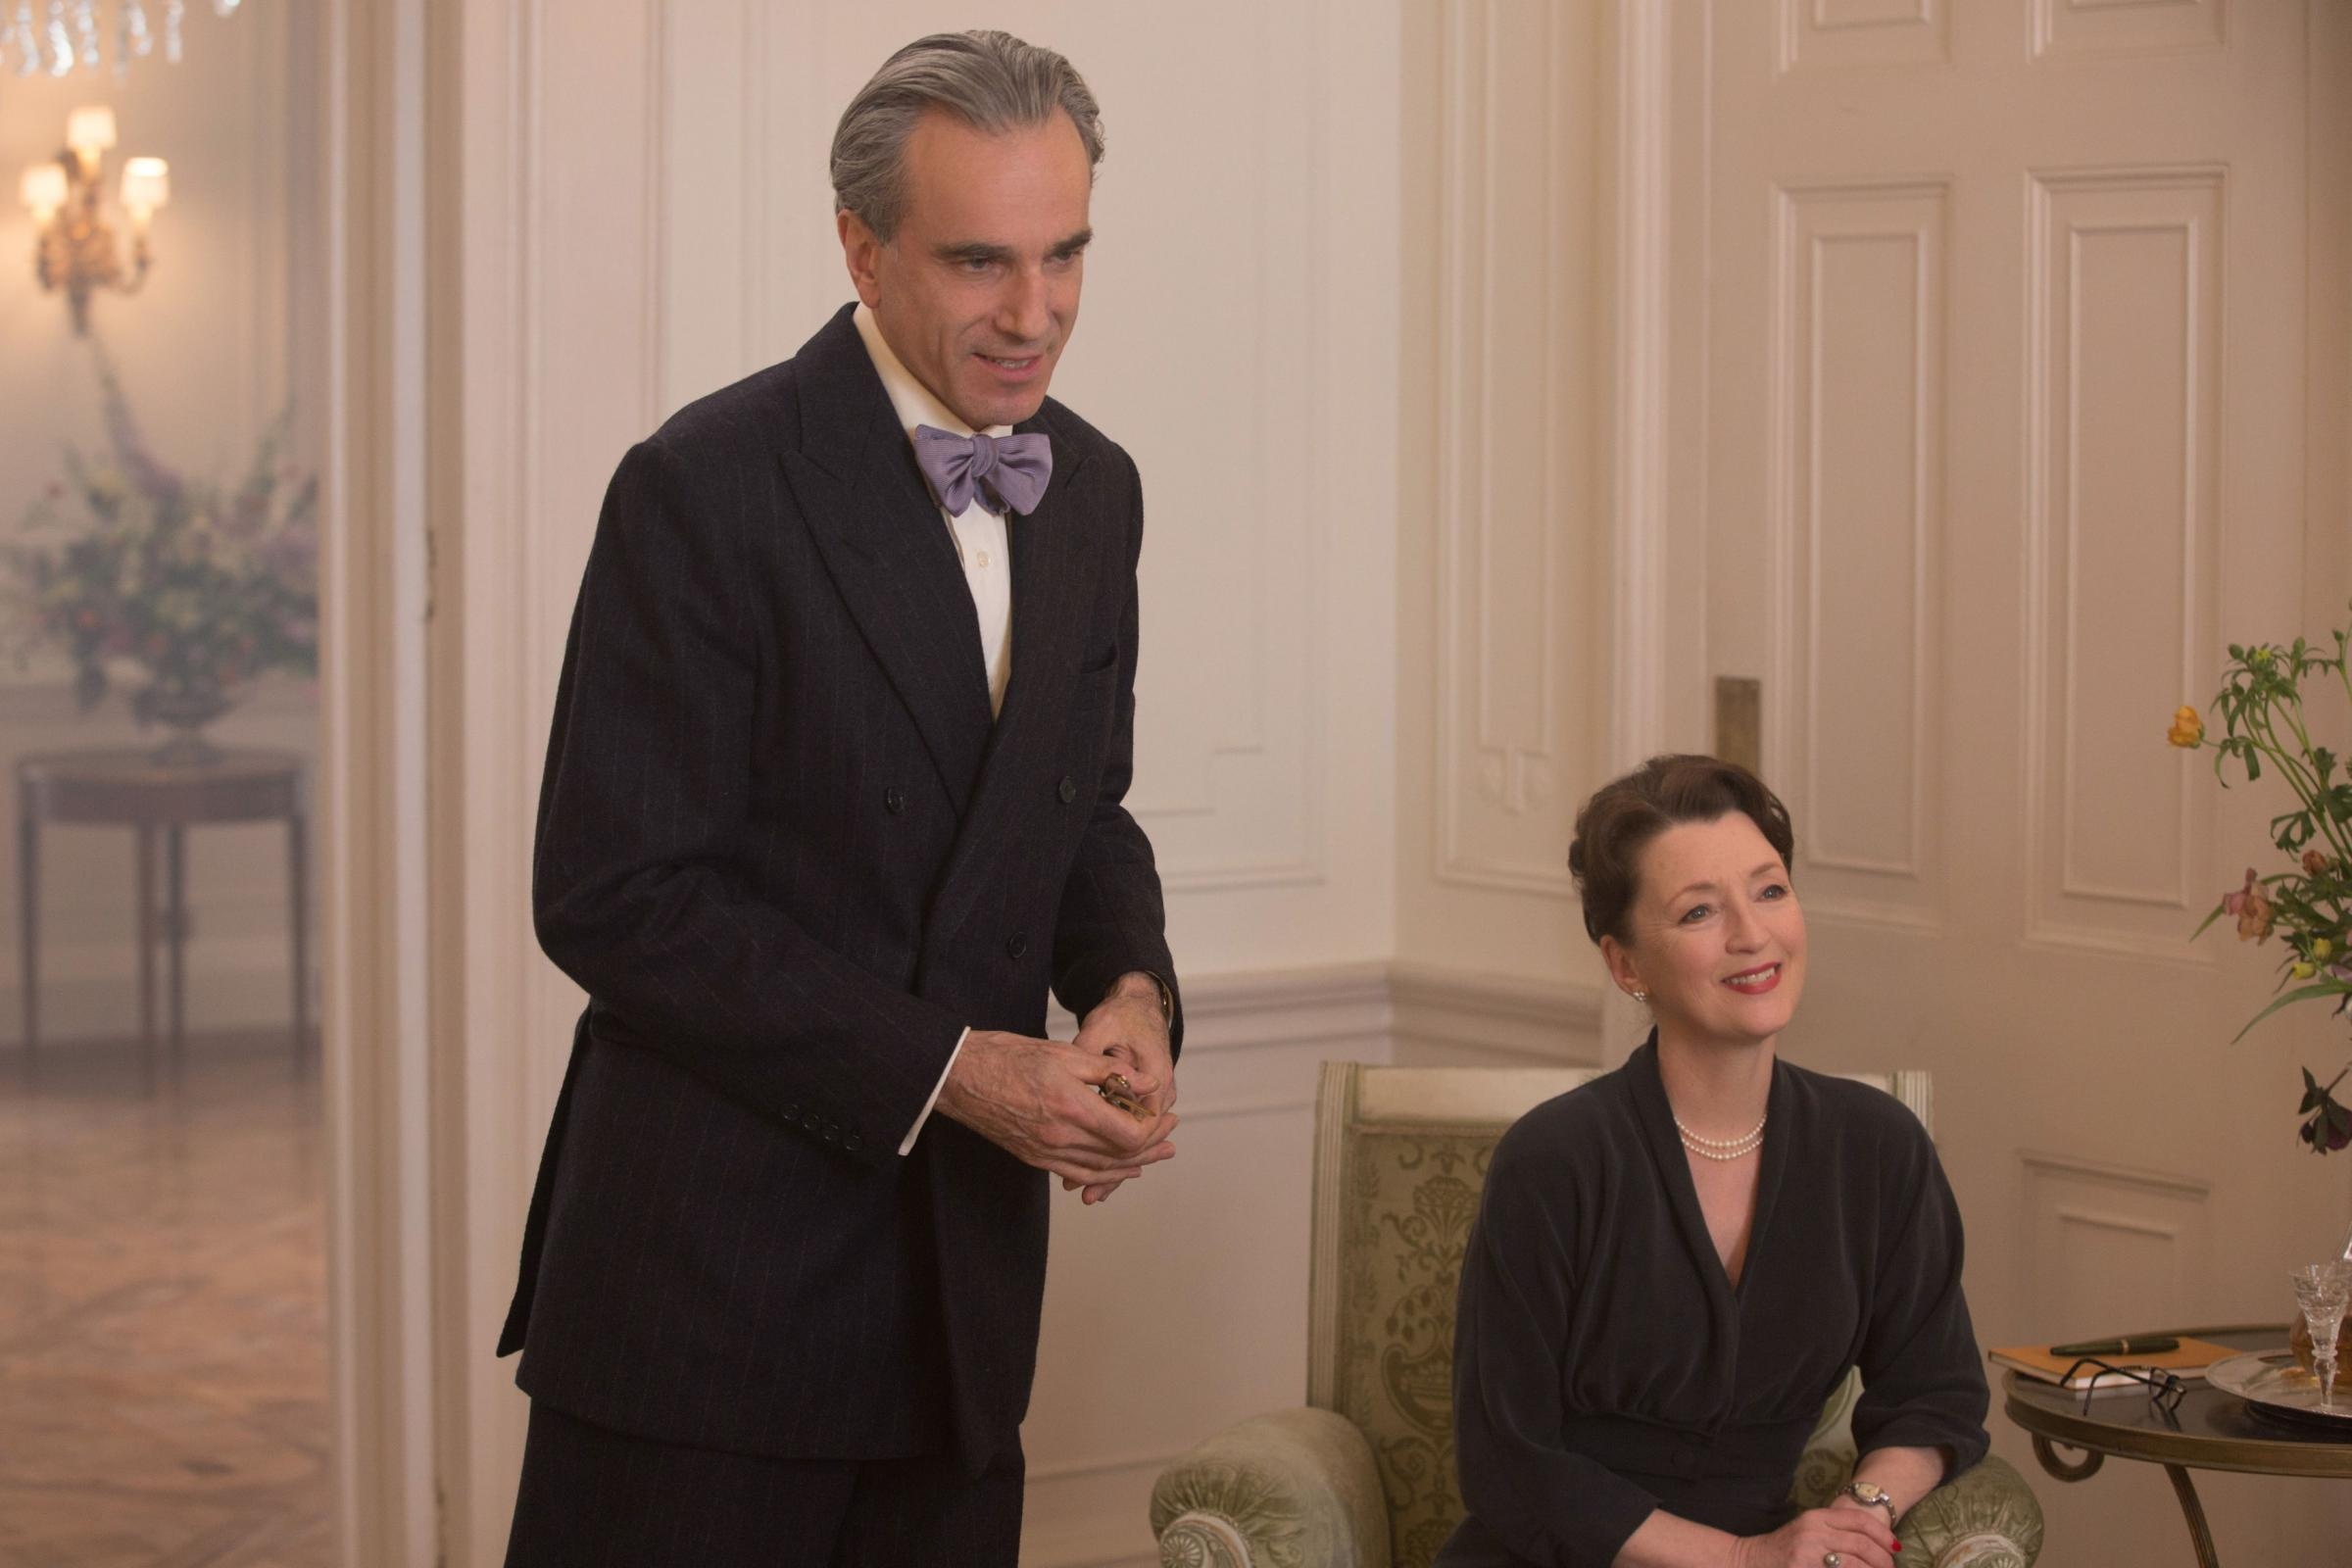 Daniel Day-Lewis as Reynolds Woodcock and Lesley Manville as Cyril. Picture: PA Photo/Focus Features/Universal Pictures/Laurie Sparham